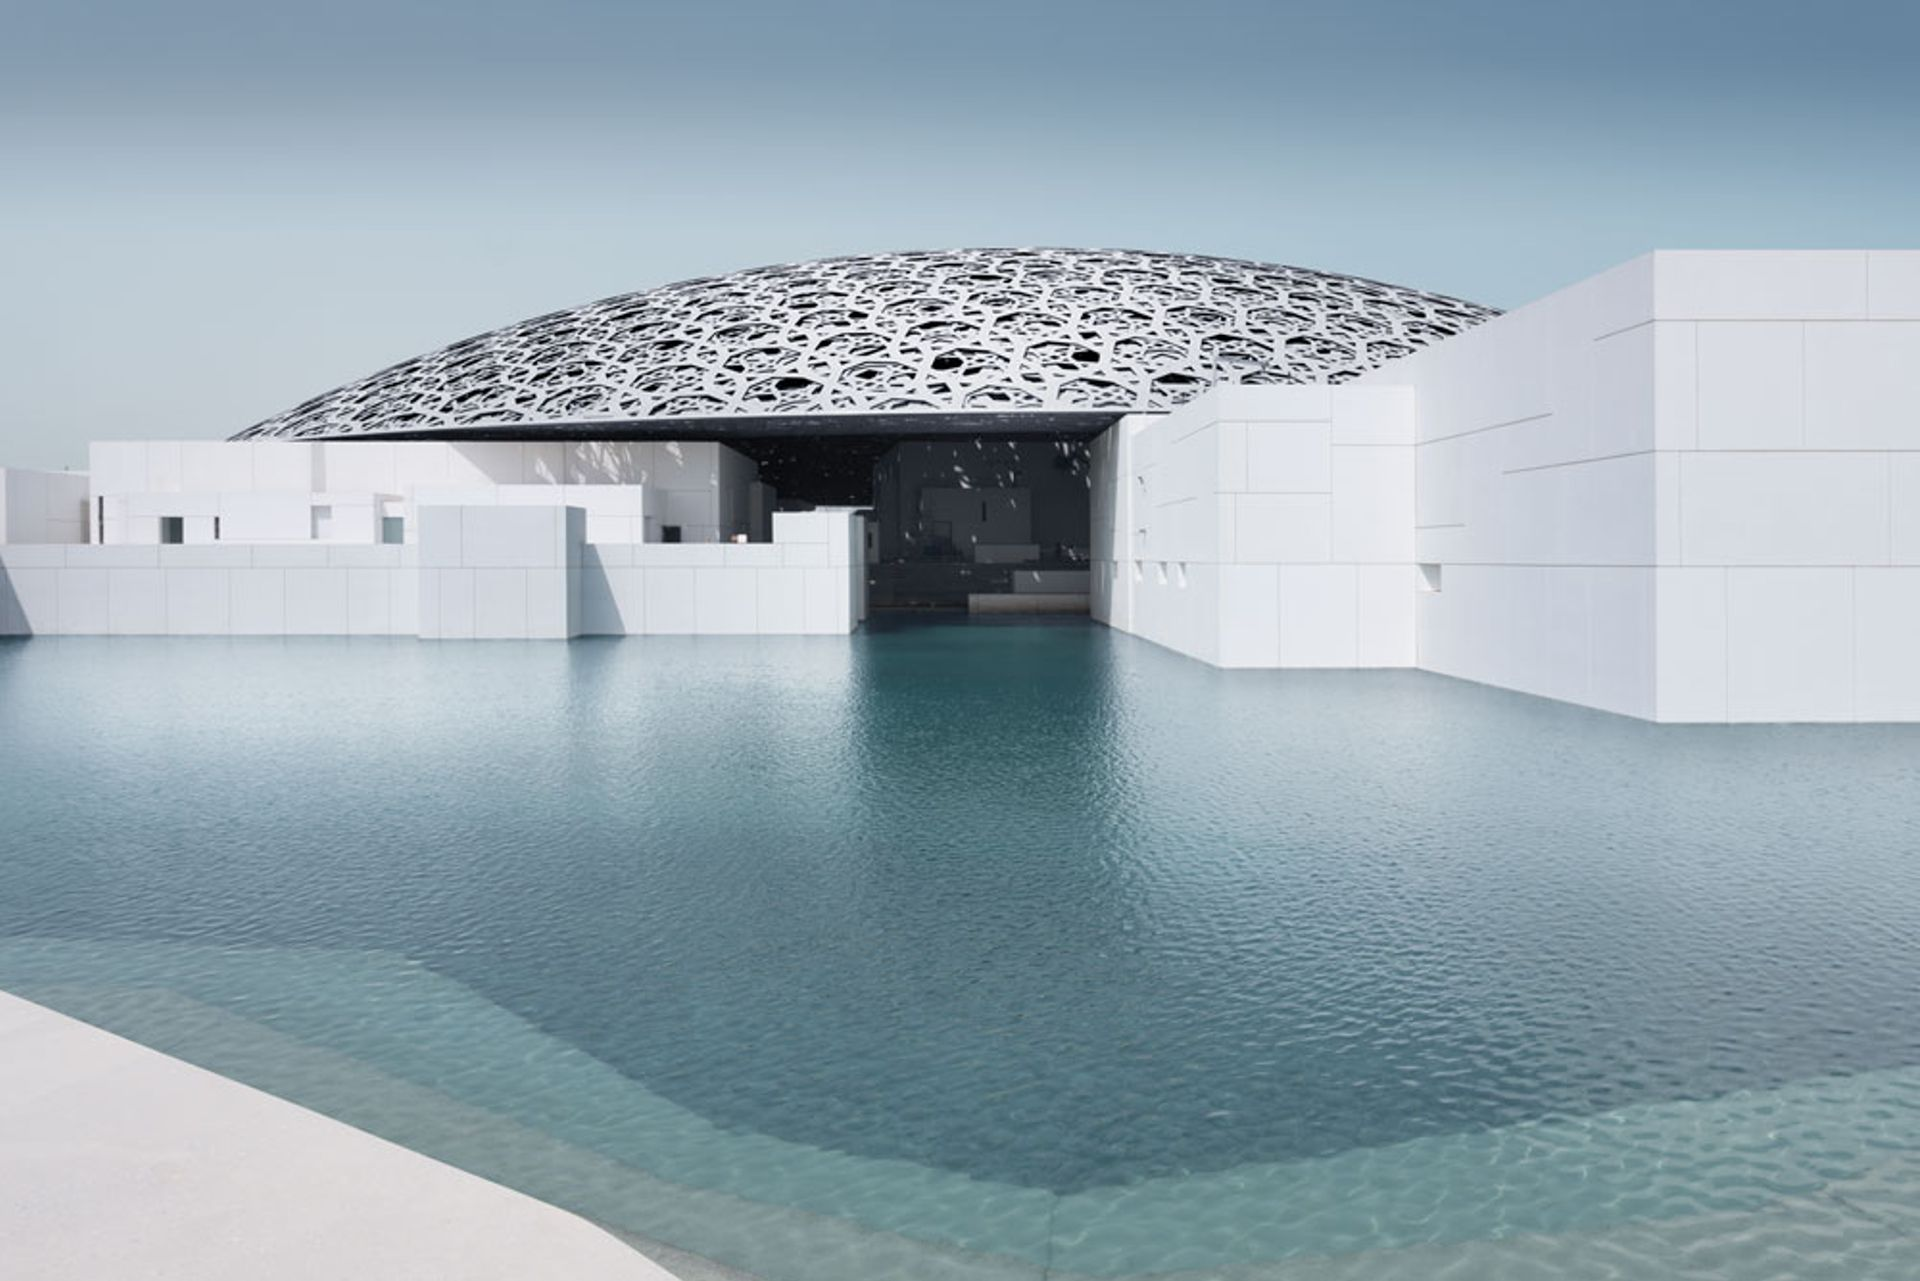 Jean Nouvel's Louvre Abu Dhabi was unveiled in November Louvre Abu Dhabi. Photo: Mohamed Somji